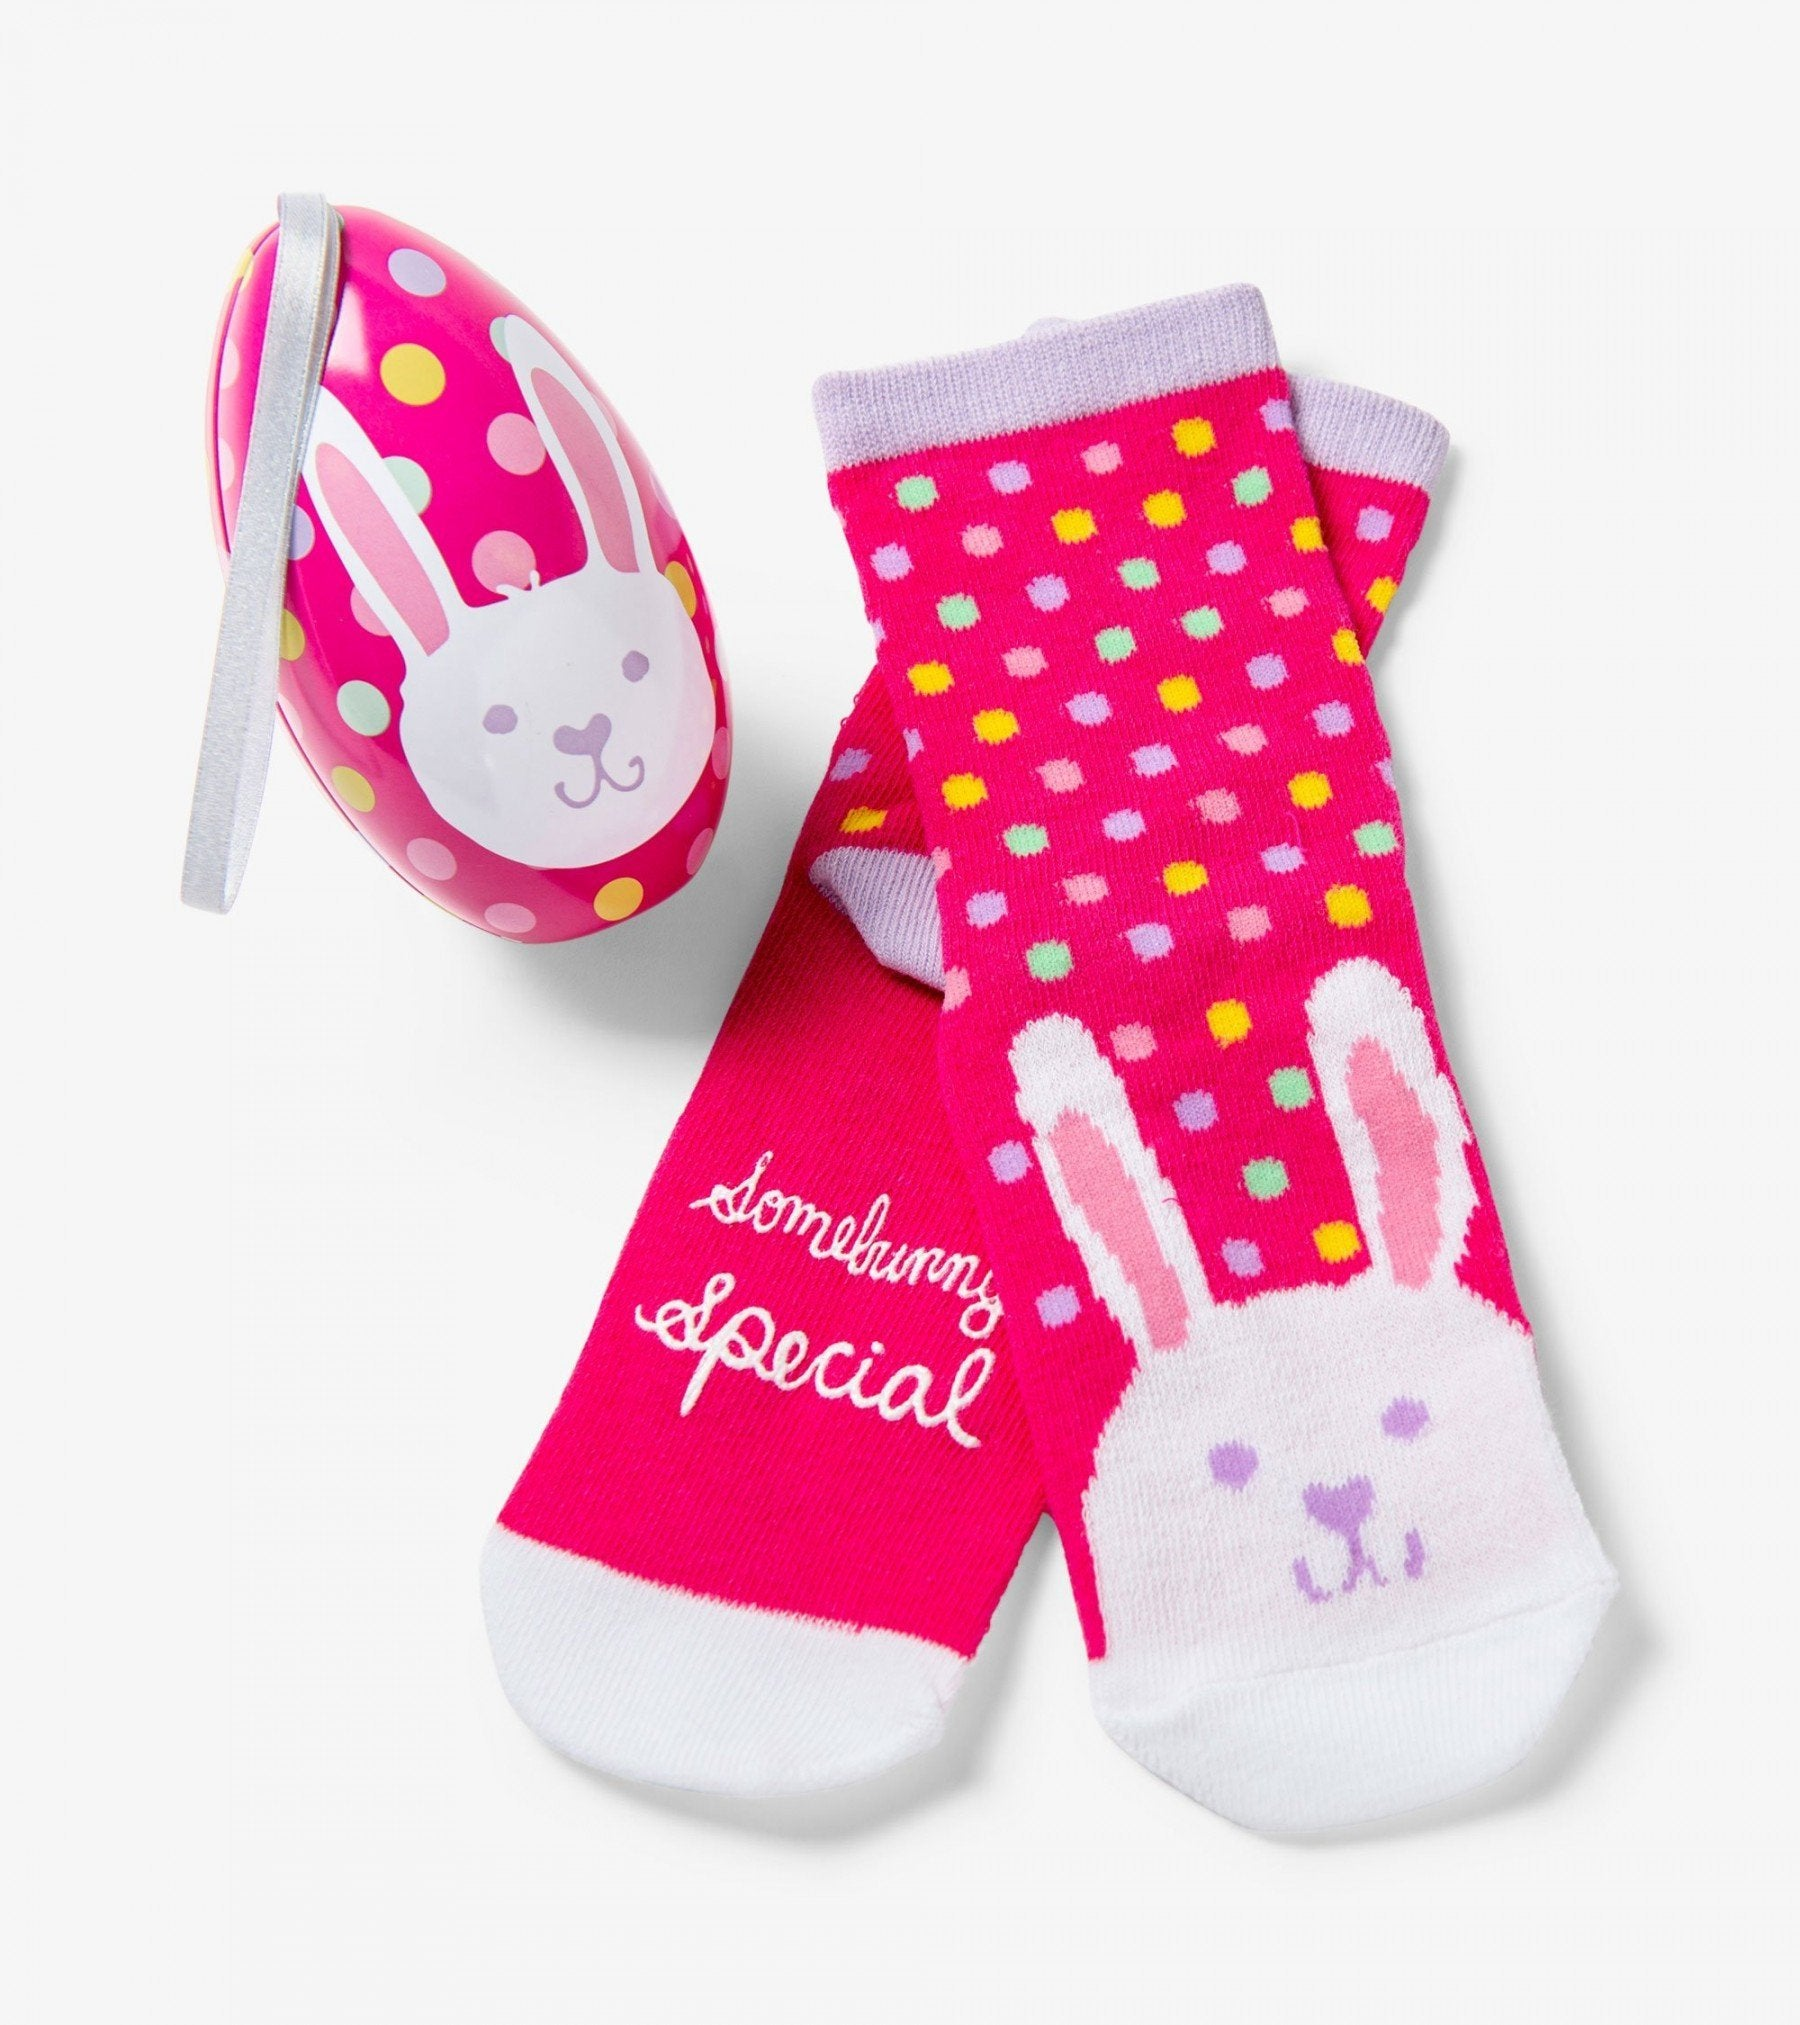 """SOMEBUNNY SPECIAL"" KIDS SOCKS IN EGGS - Molly's! A Chic and Unique Boutique"